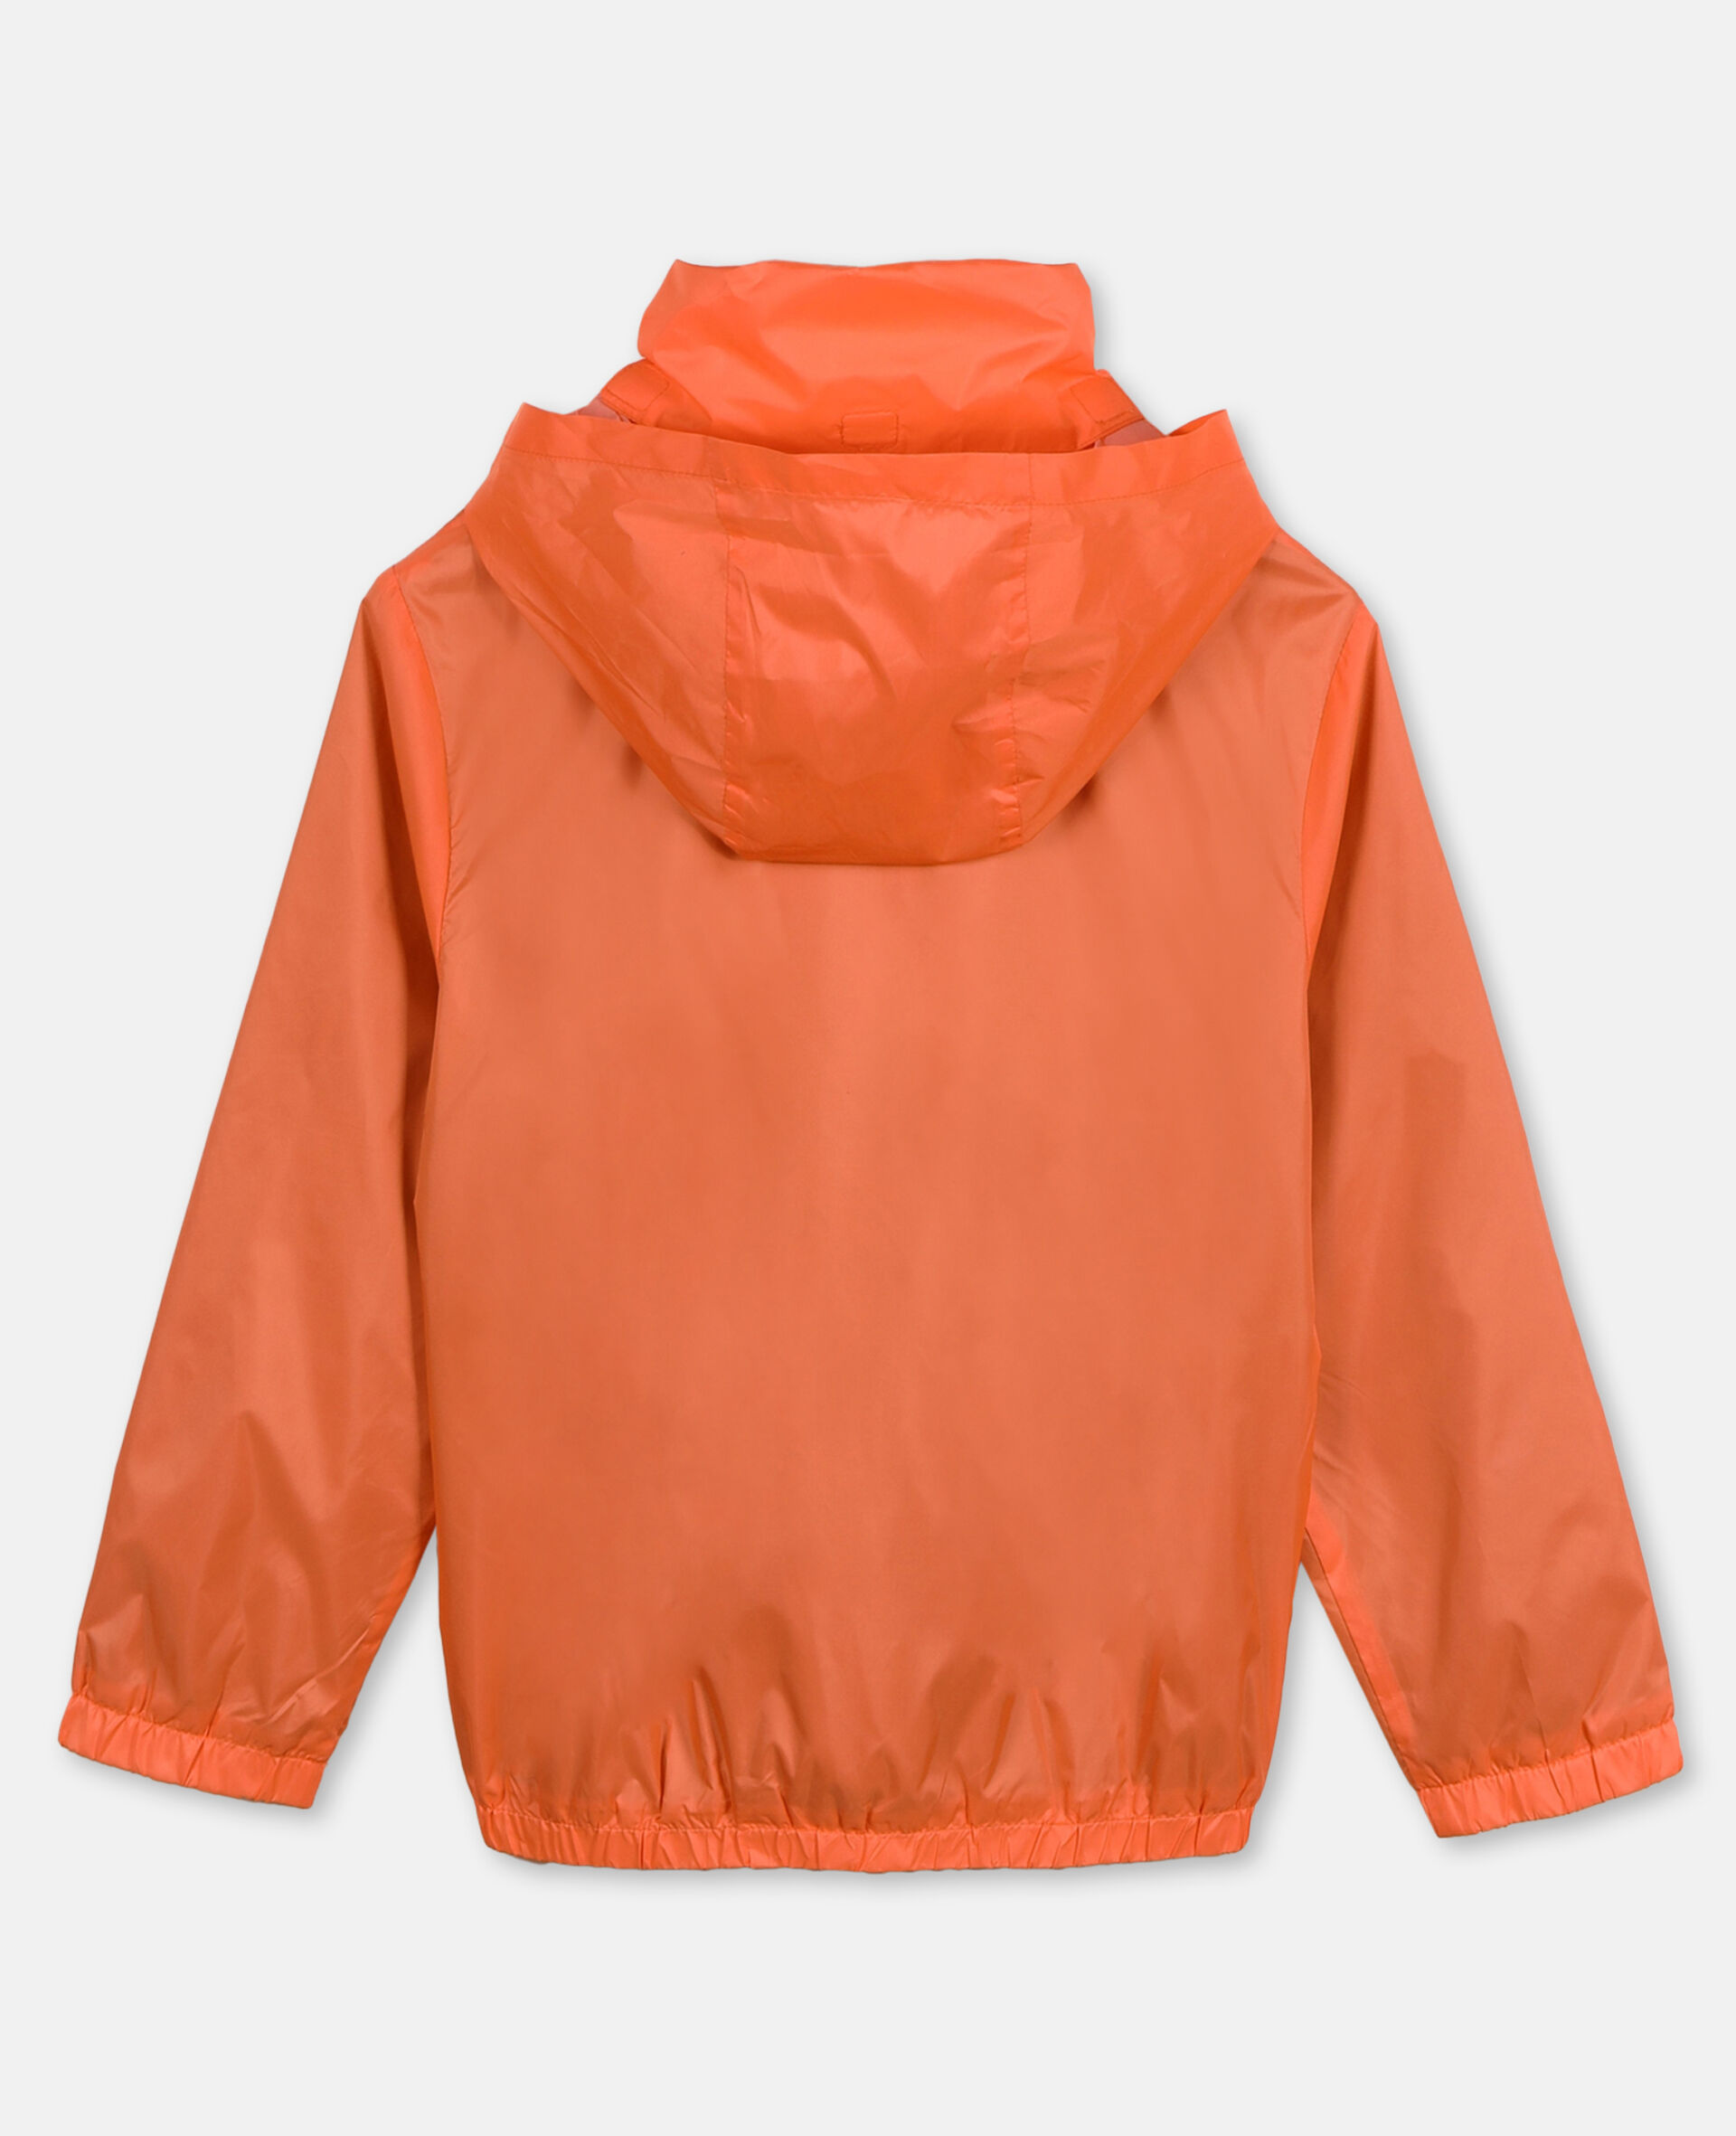 Logo Nylon Active Jacket -Orange-large image number 3